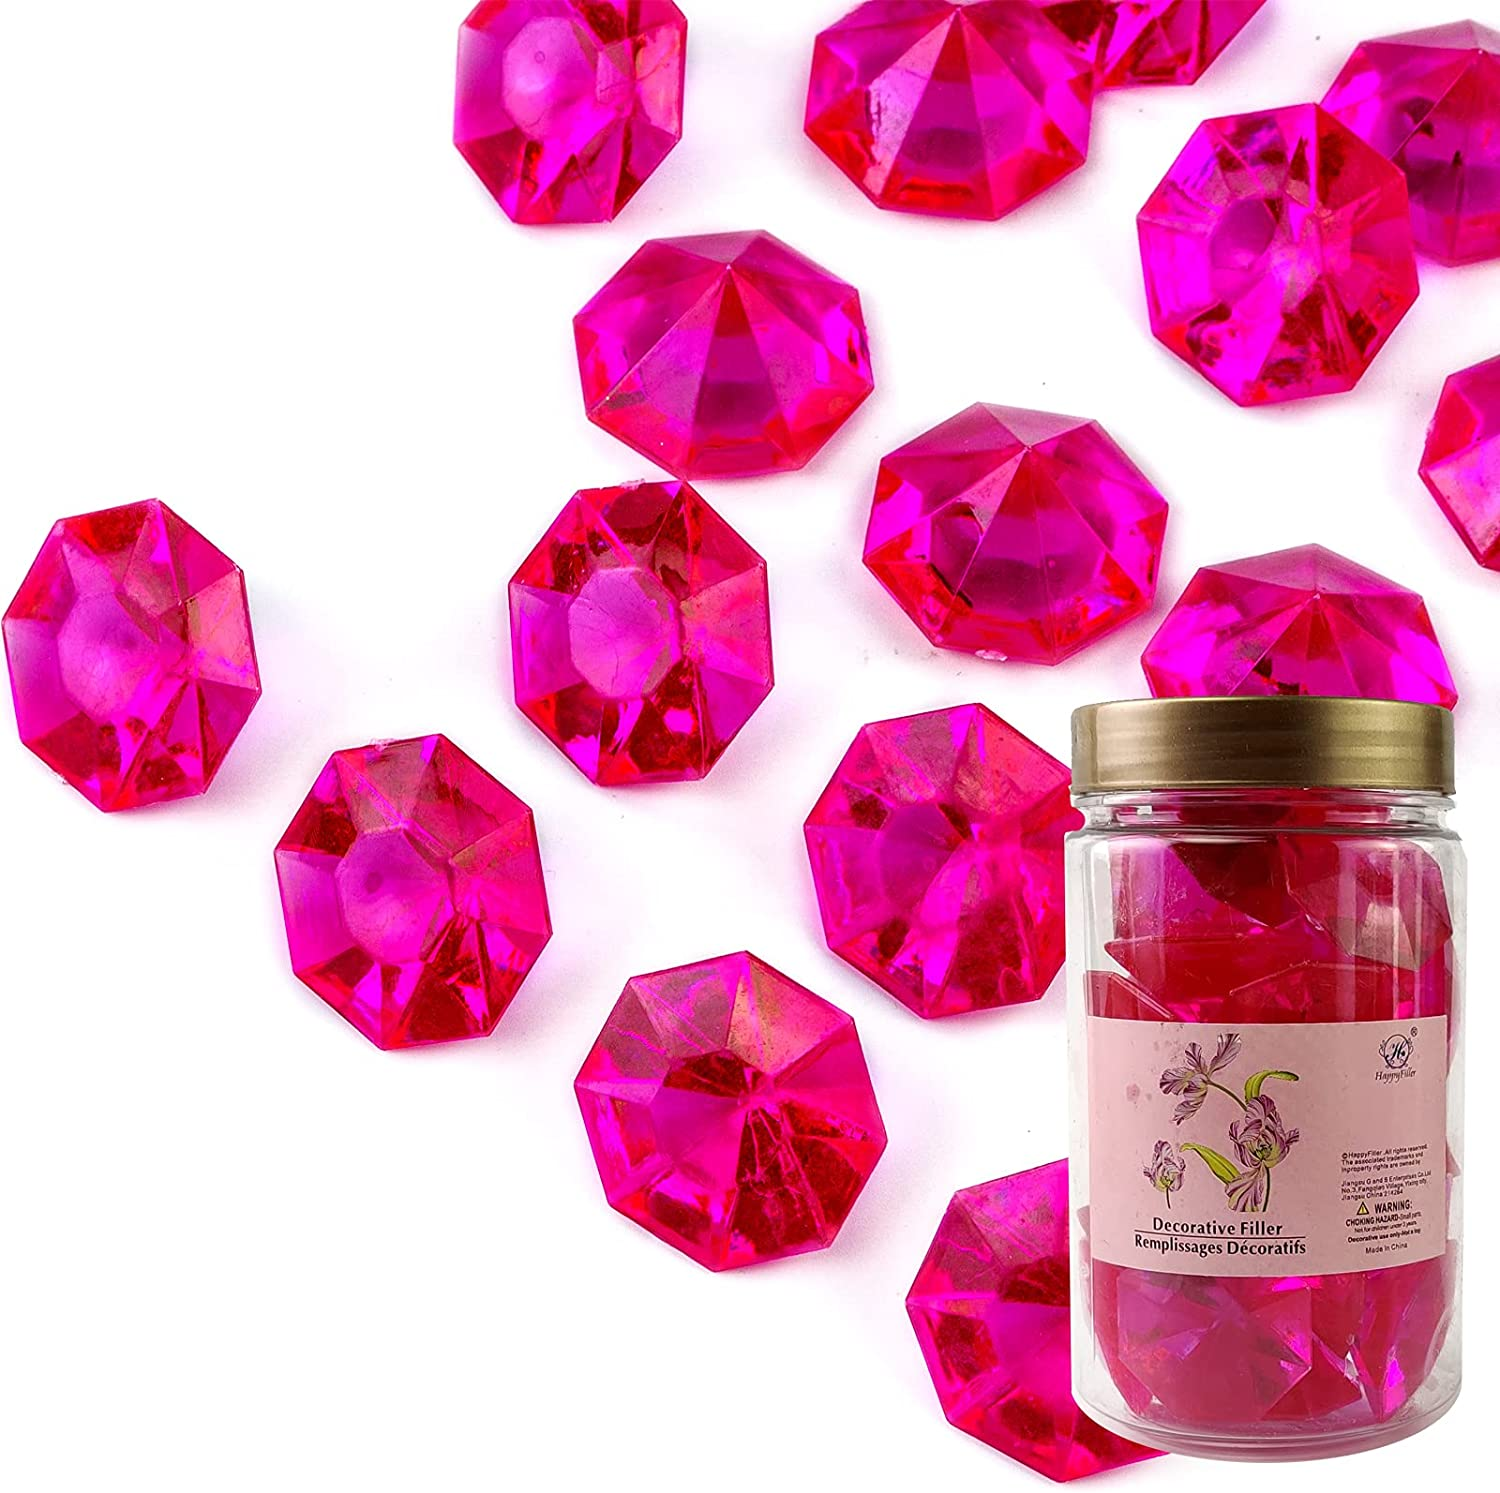 HappyFiller Hot Pink Crystal Treasure Gem Stones Fake Acrylic Diamonds 30 mm Wedding Decorations for Table Reception,Arts Crafts,Vase Fillers,Confetti,Bridal Shower Favors,Approx.30 pcs